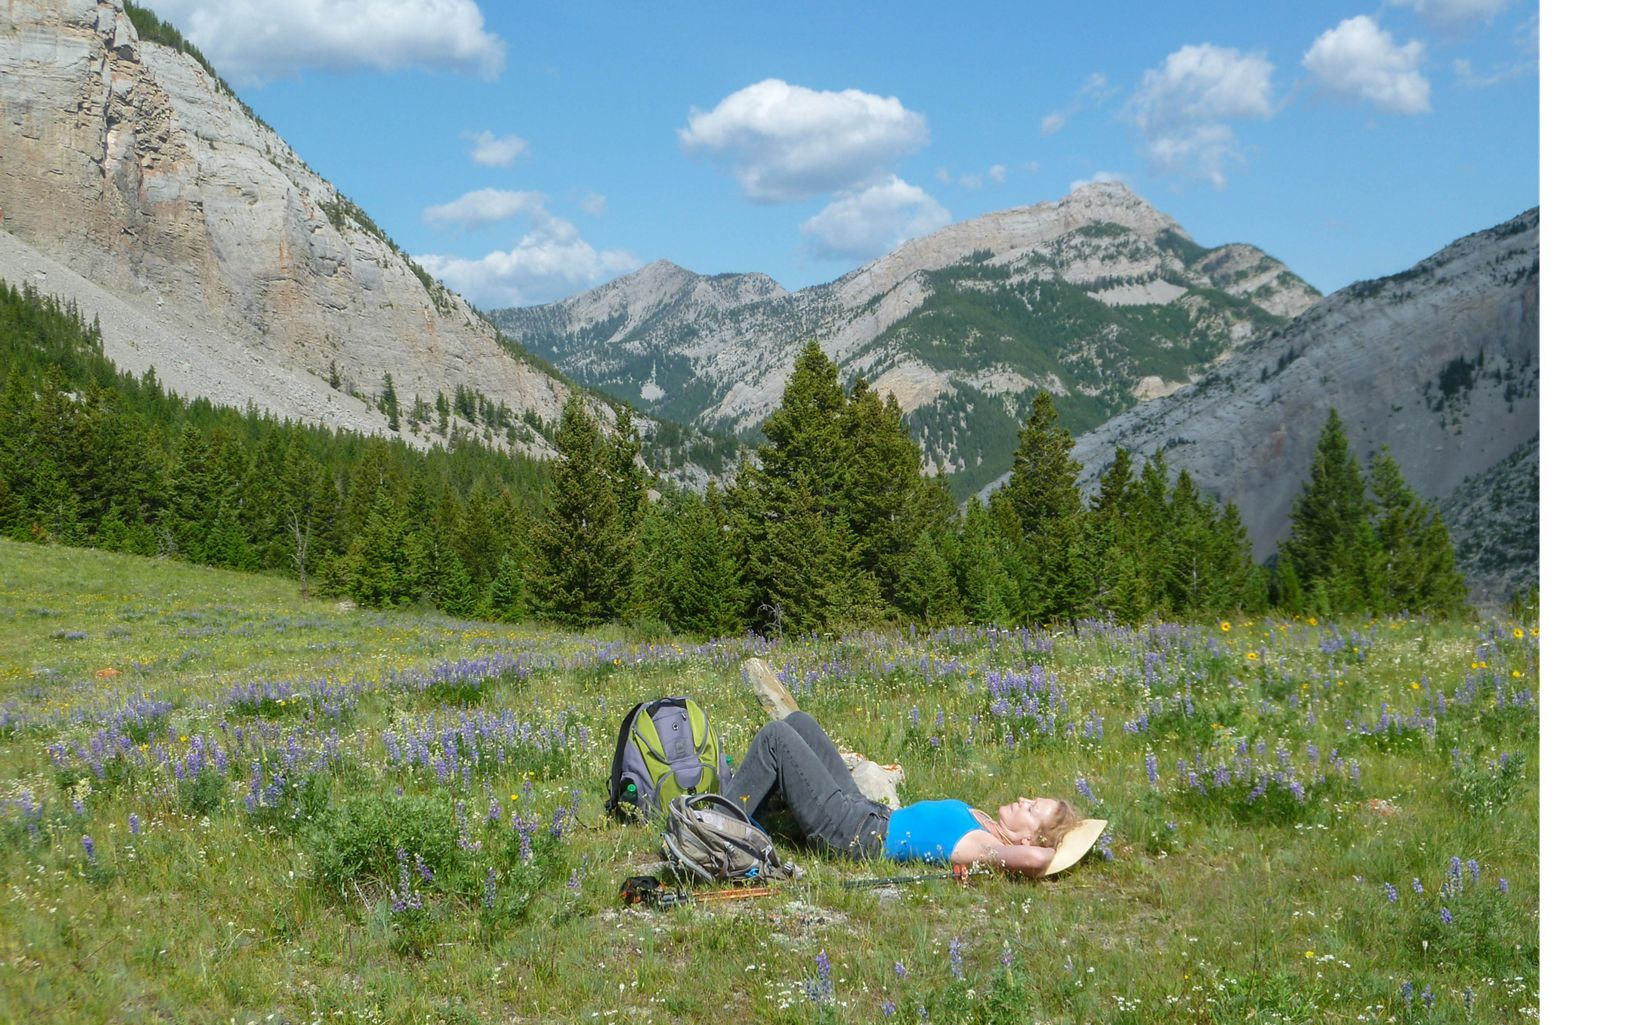 A woman relaxes in a meadow at The Nature Conservancy's Pine Butte Guest Ranch.